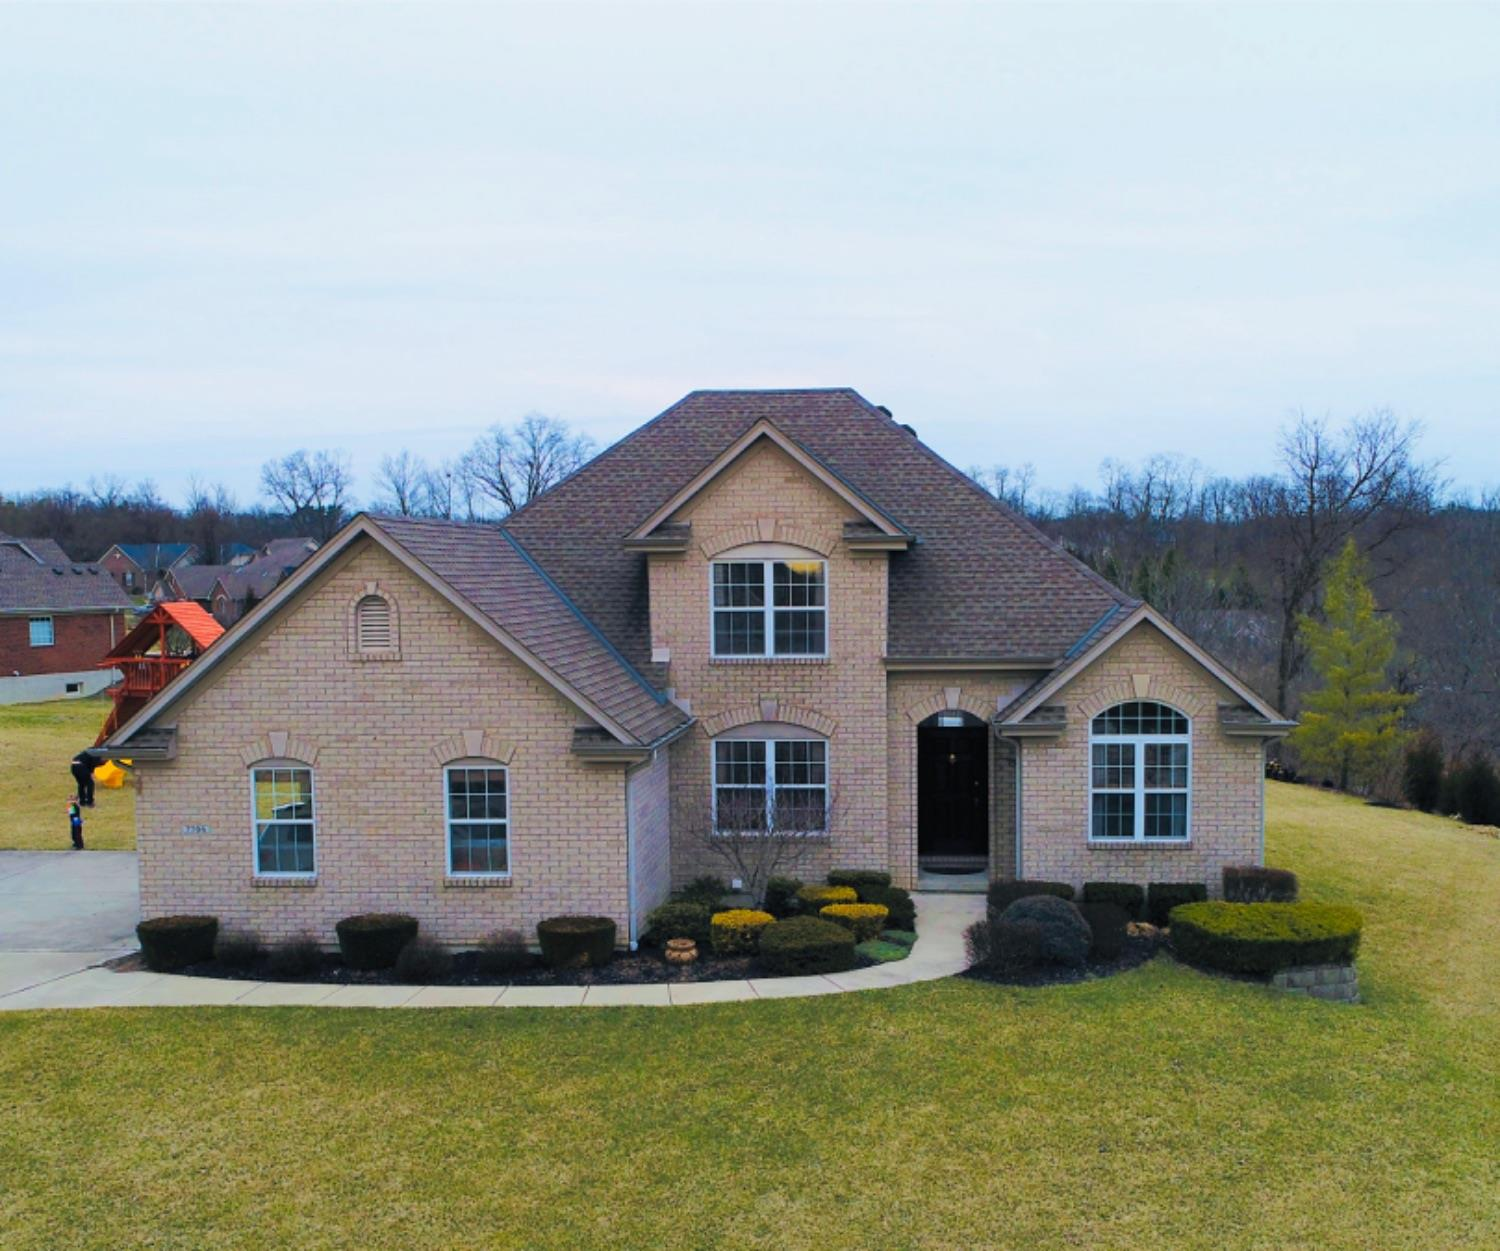 Photo 1 for 7706 Shadowleaf Ln White Oak, OH 45247